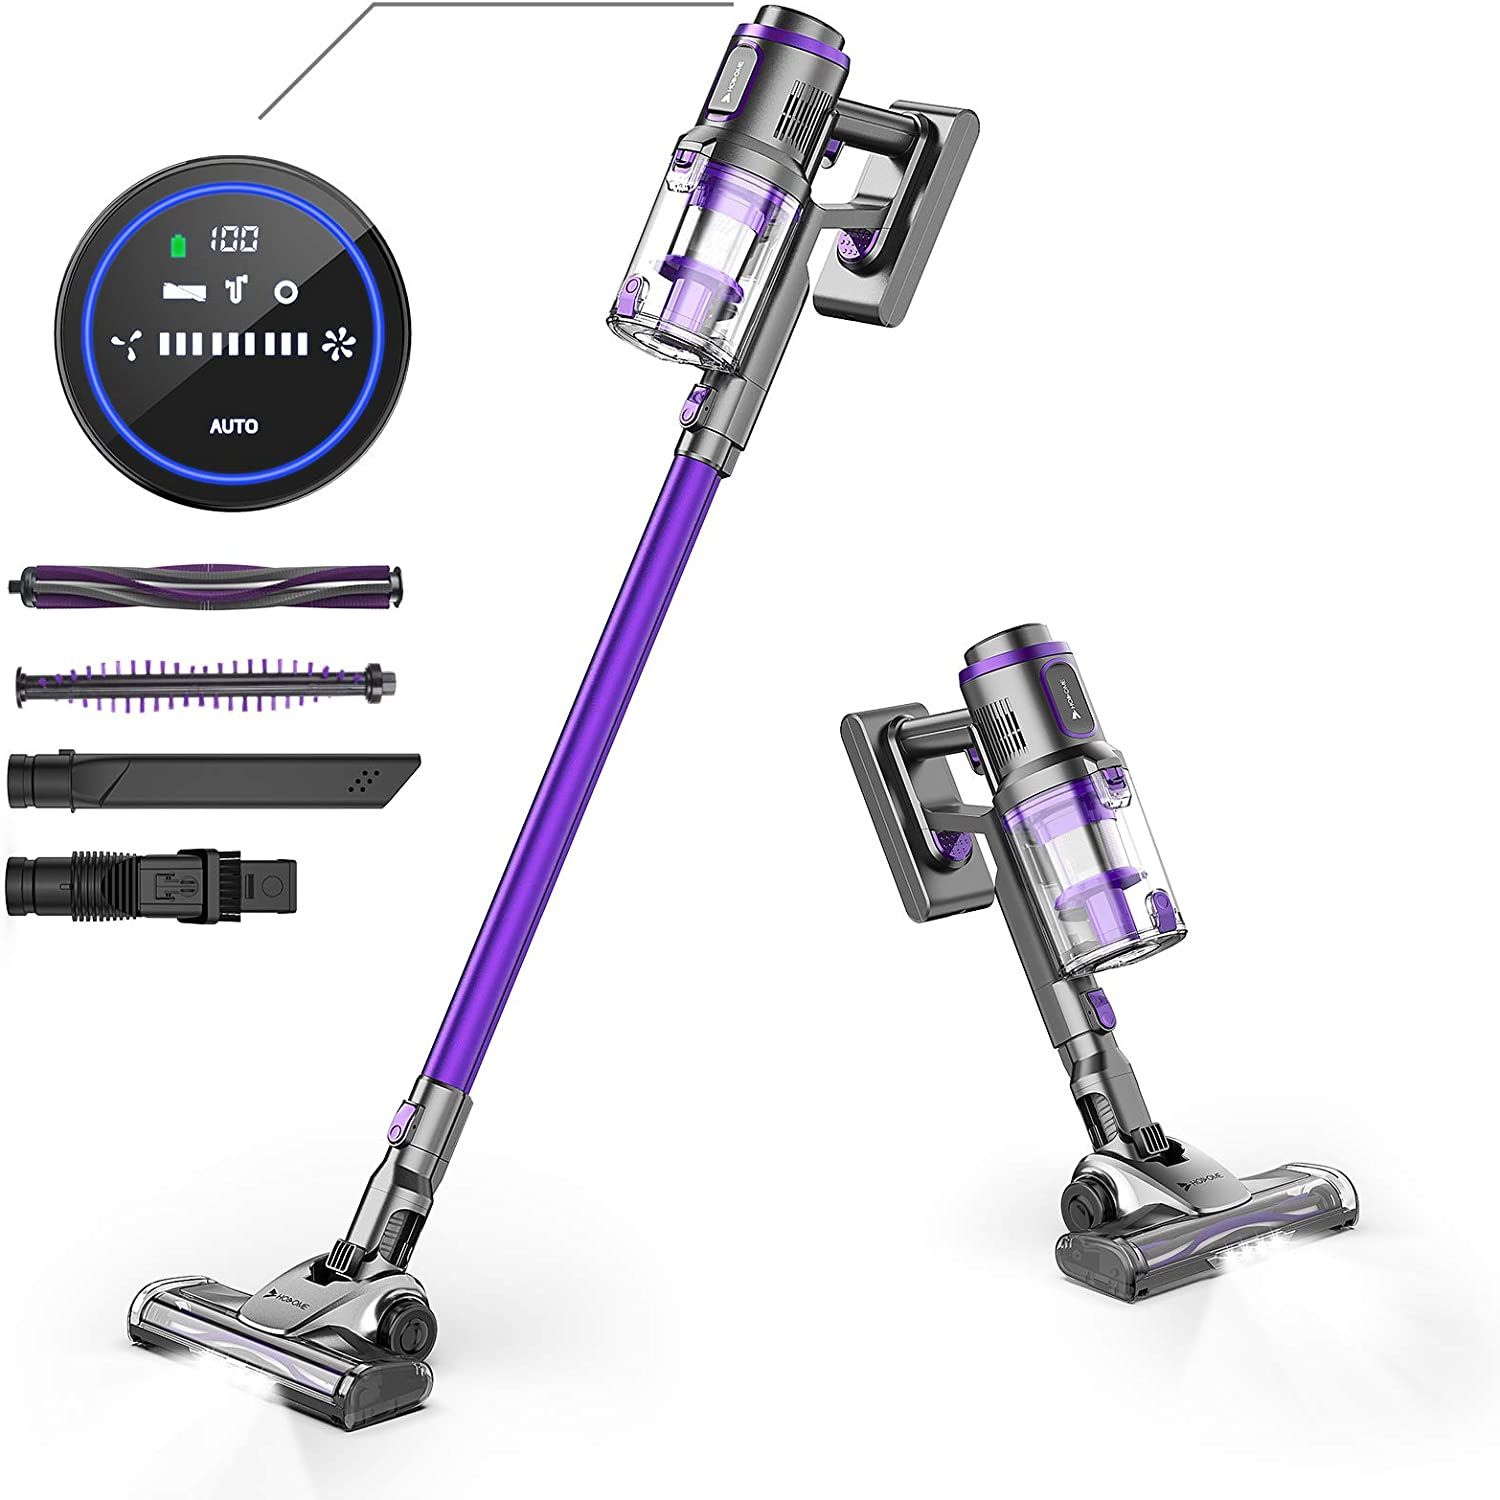 Hosome Cordless Vacuum Cleaner 22Kpa LED Screen Touch Controls 4 in 1 Handheld Cordless Stick Vacuum with Storage Base,Lightweight,43 Mins Runtime Rechargeable Battery for Home Floor Carpet Pet Hair